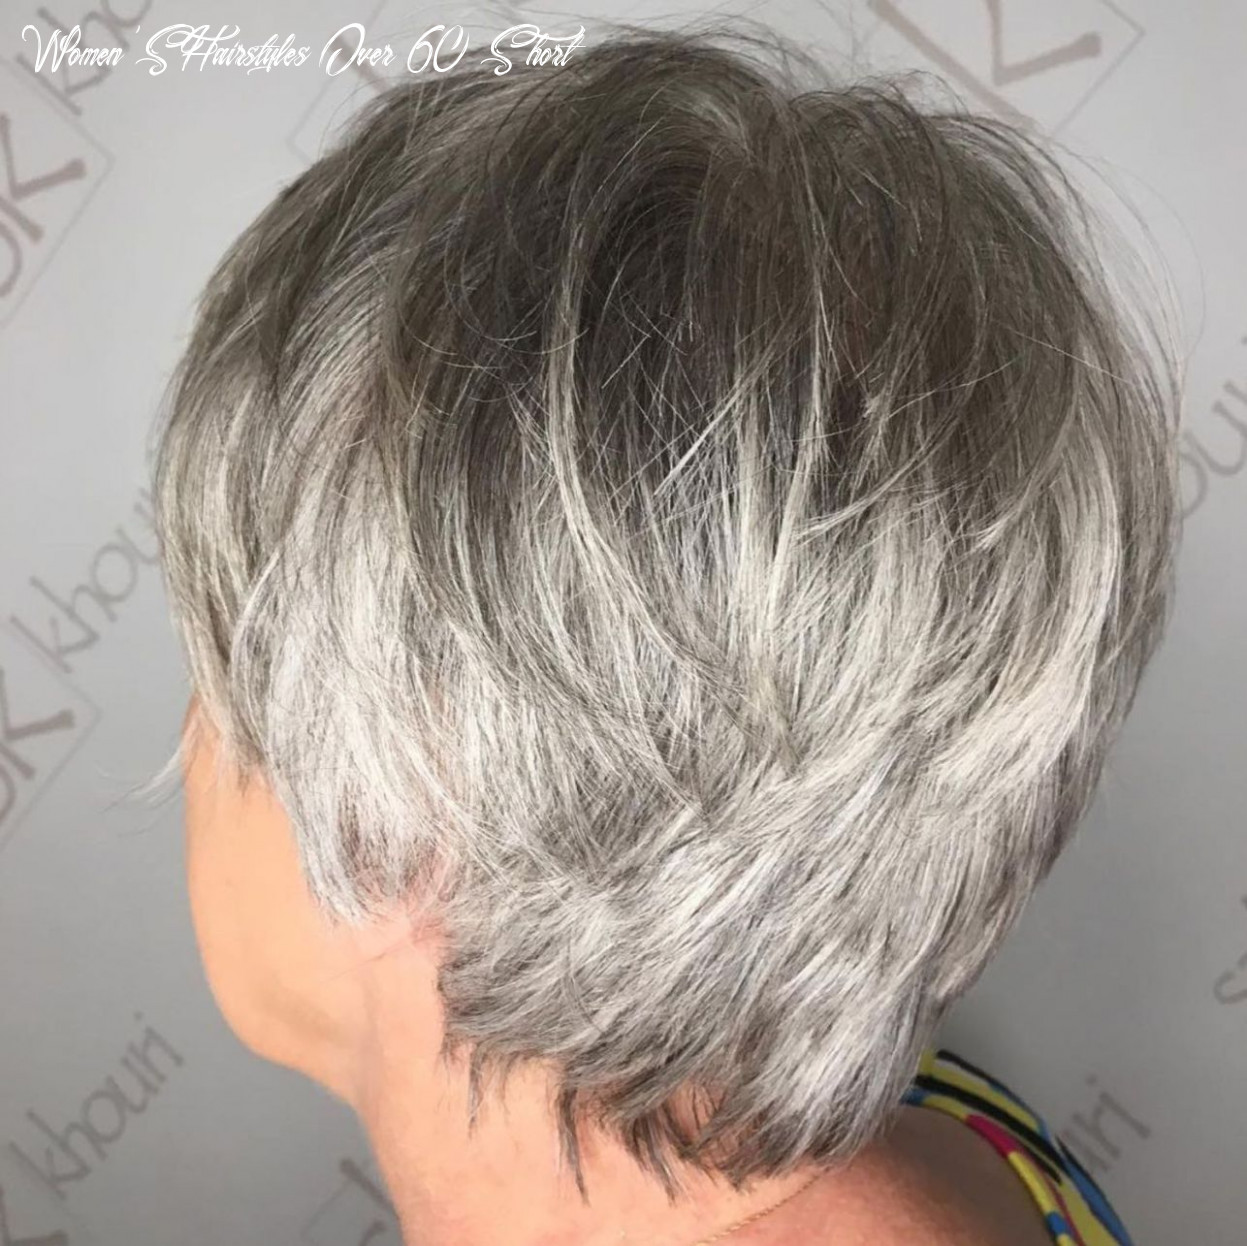 11 gorgeous gray hair styles | hairstyles for seniors, gorgeous